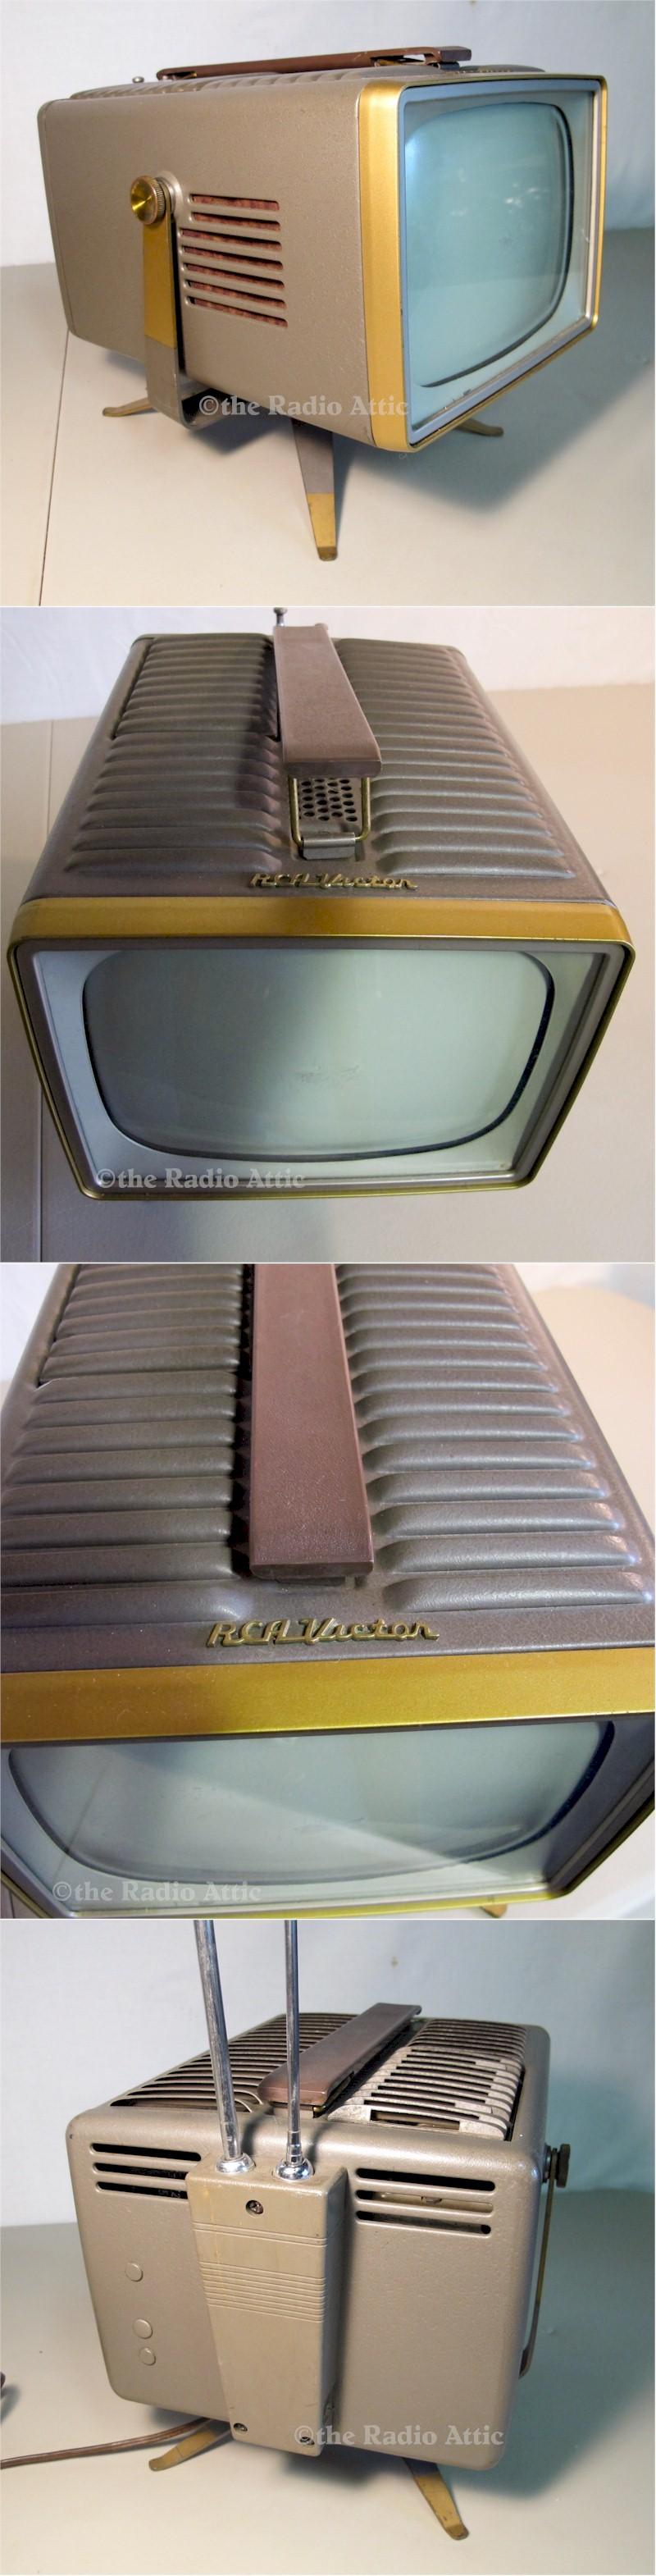 RCA 8-PT-703 Portable Television (1956)